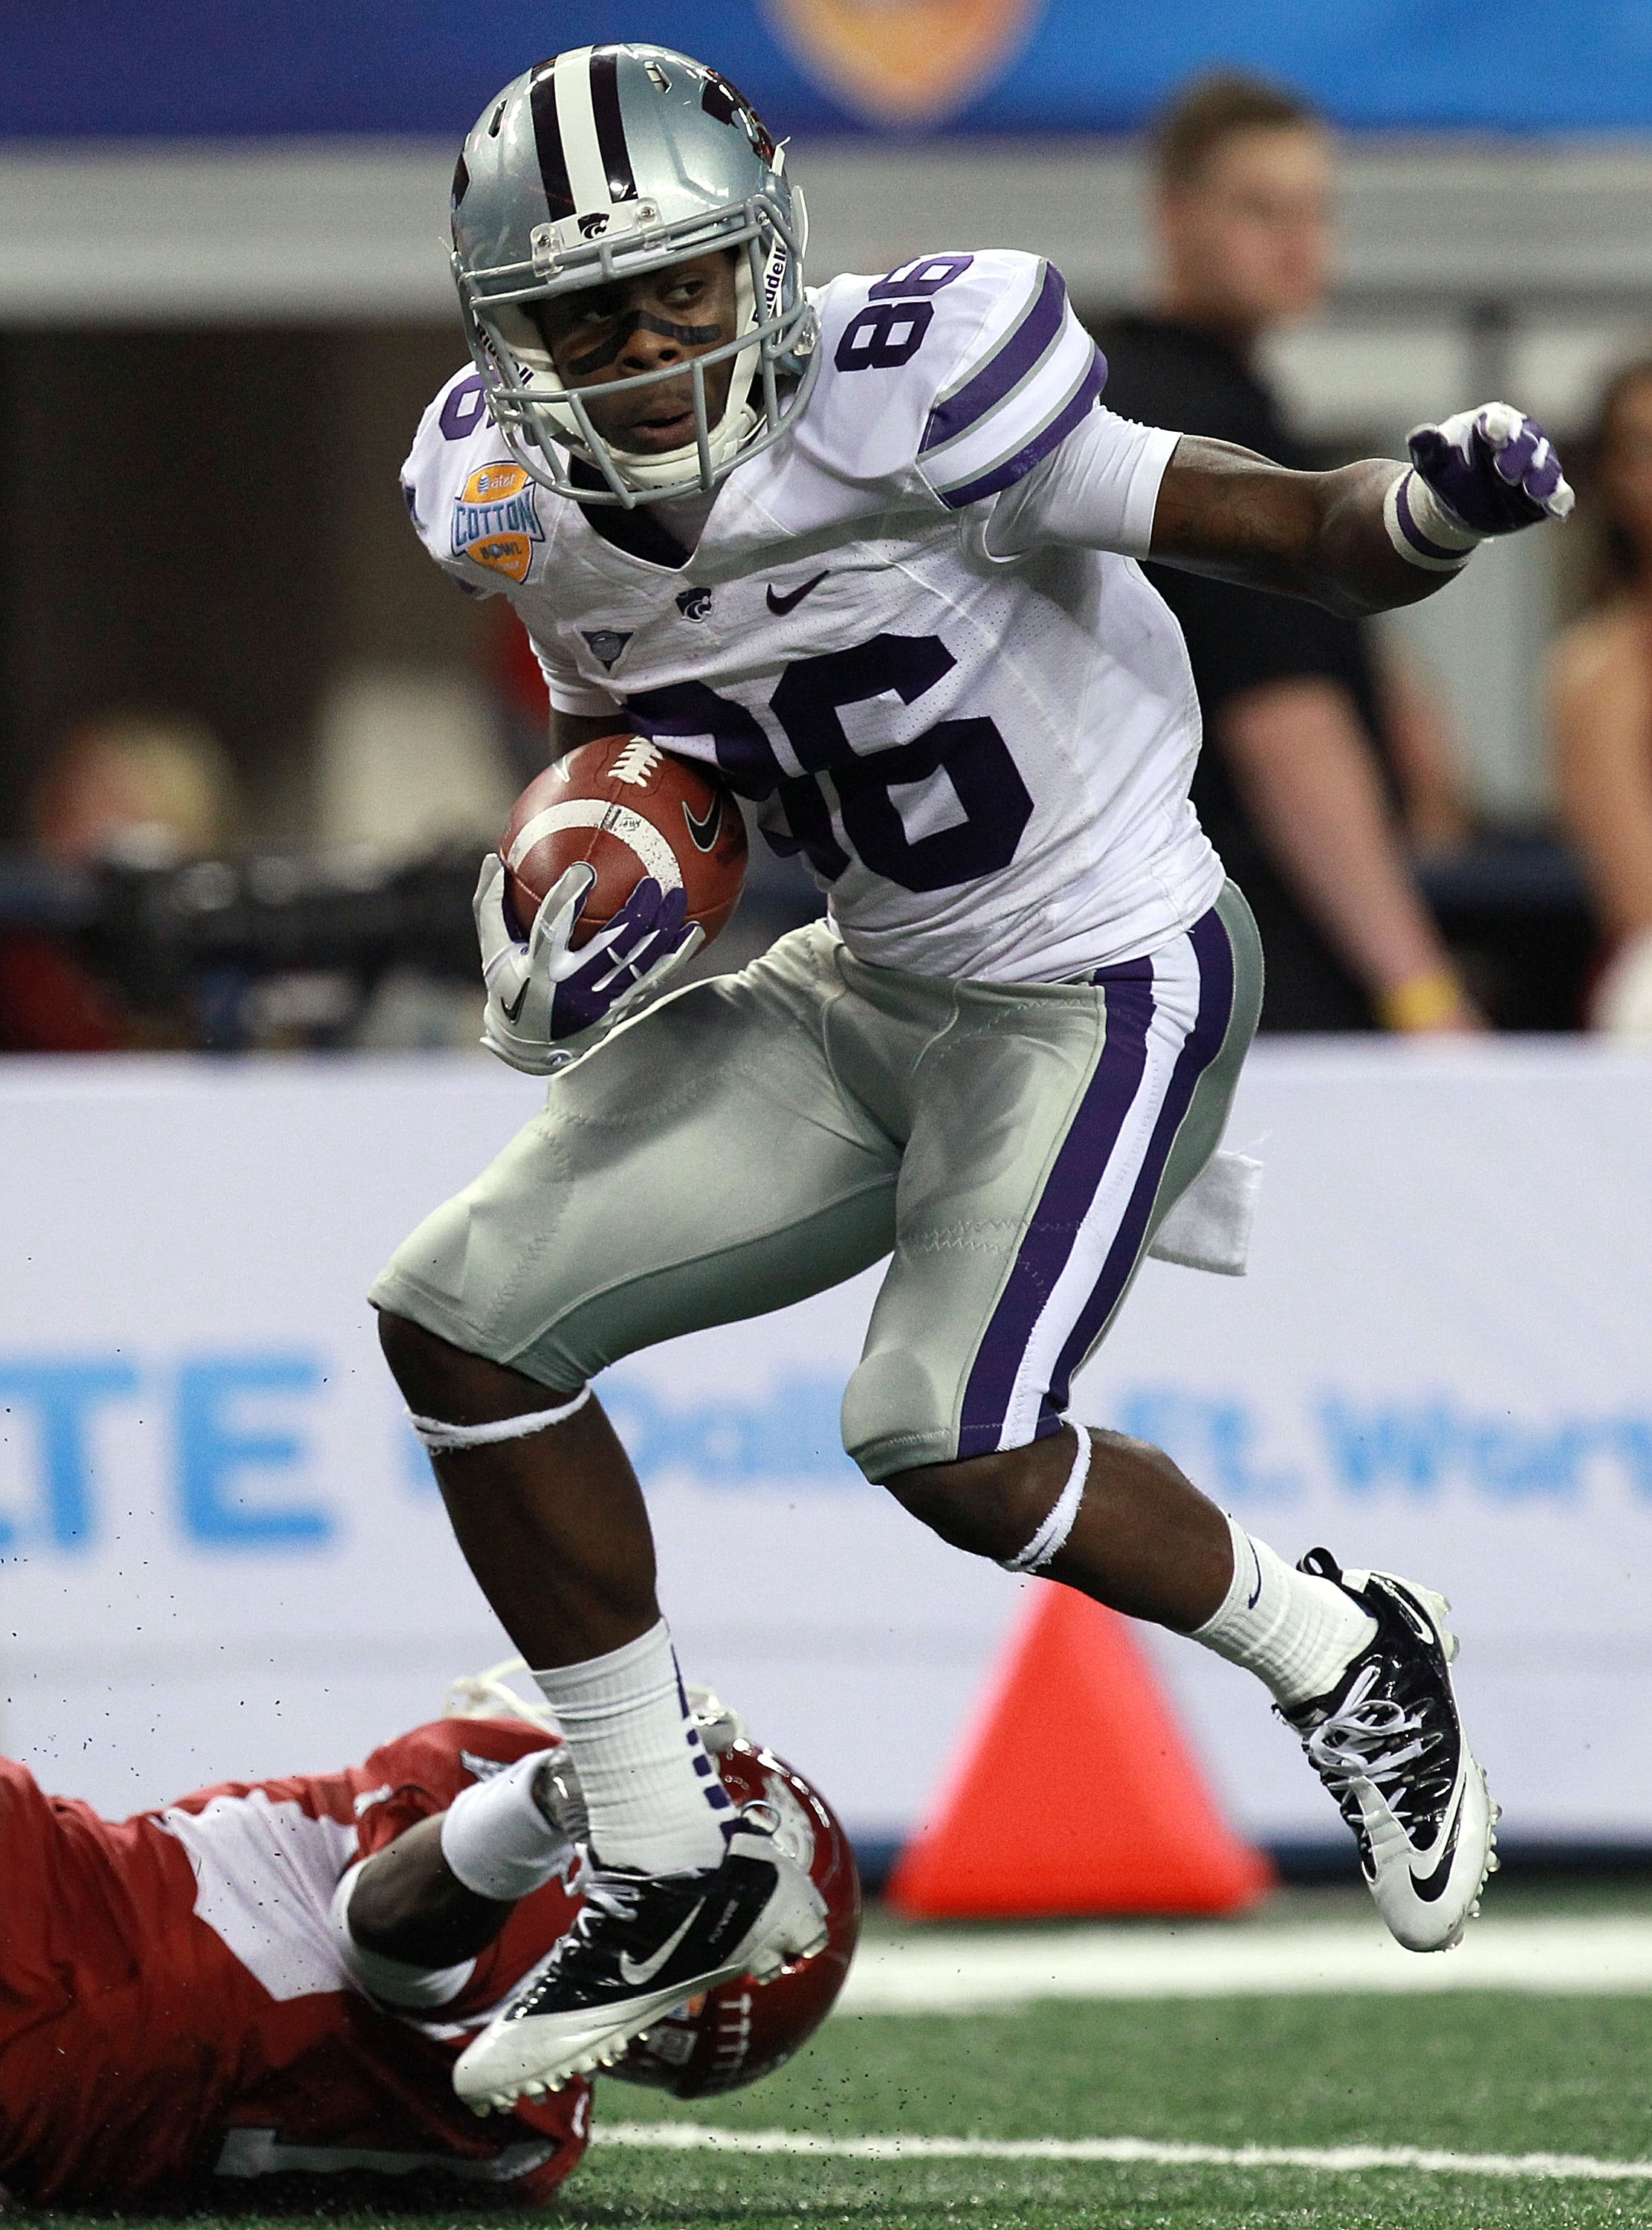 Don't be carried away: Dominique Heath is not going to be the next Tyler Lockett. But he might be the next Tramaine Thompson.